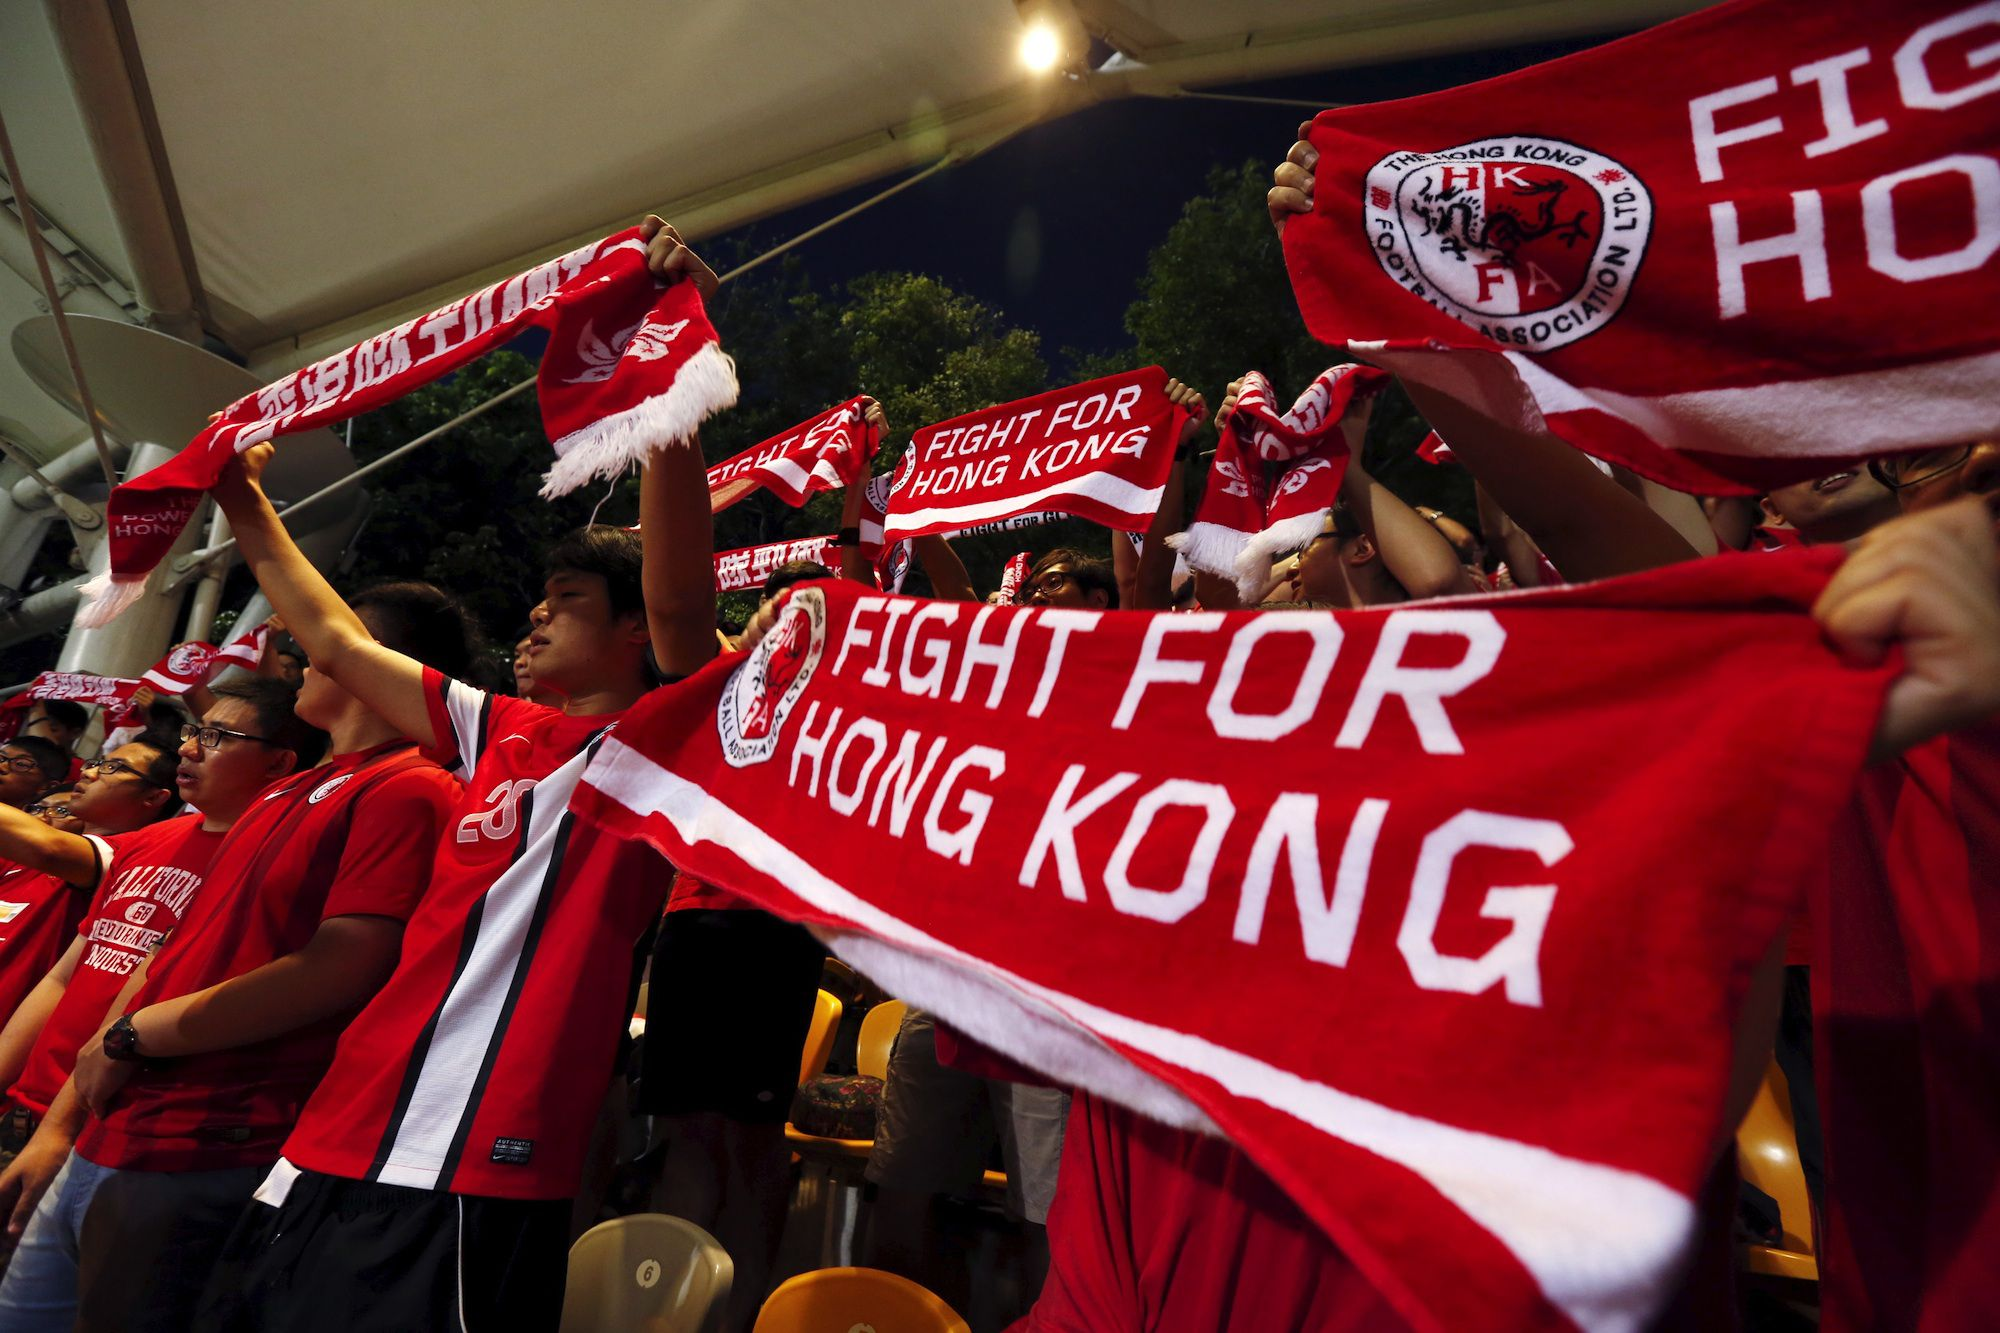 Hong Kong fans sing while holding banners at the World Cup qualifying match between Hong Kong and the Maldives in Hong Kong, China June 16, 2015. Hong Kong's leader warned on Tuesday that violence will not be tolerated, a day after authorities arrested 10 people and seized suspected explosives ahead of a crucial vote on a China-backed electoral reform package this week. Anger has spilled over to football crowds, with supporters of the Hong Kong team loudly booing the Chinese national anthem on Tuesday night at the start of the local World Cup Asian zone qualifying match against the Maldives.